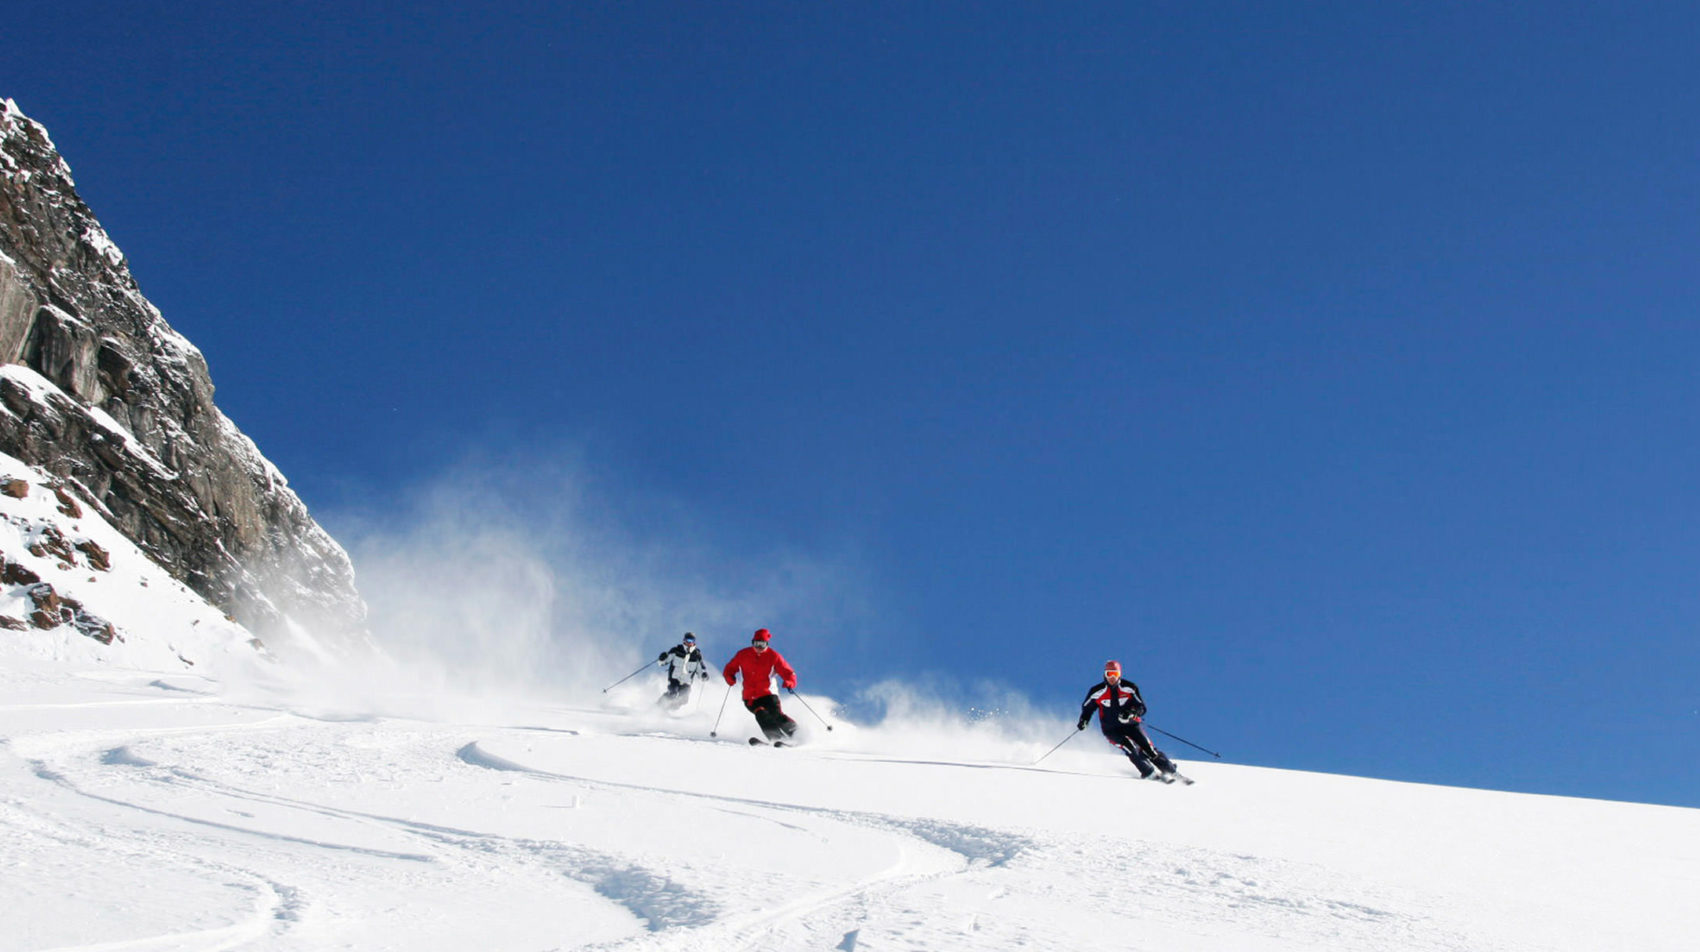 heliskiing_tracks-in-snow-skier